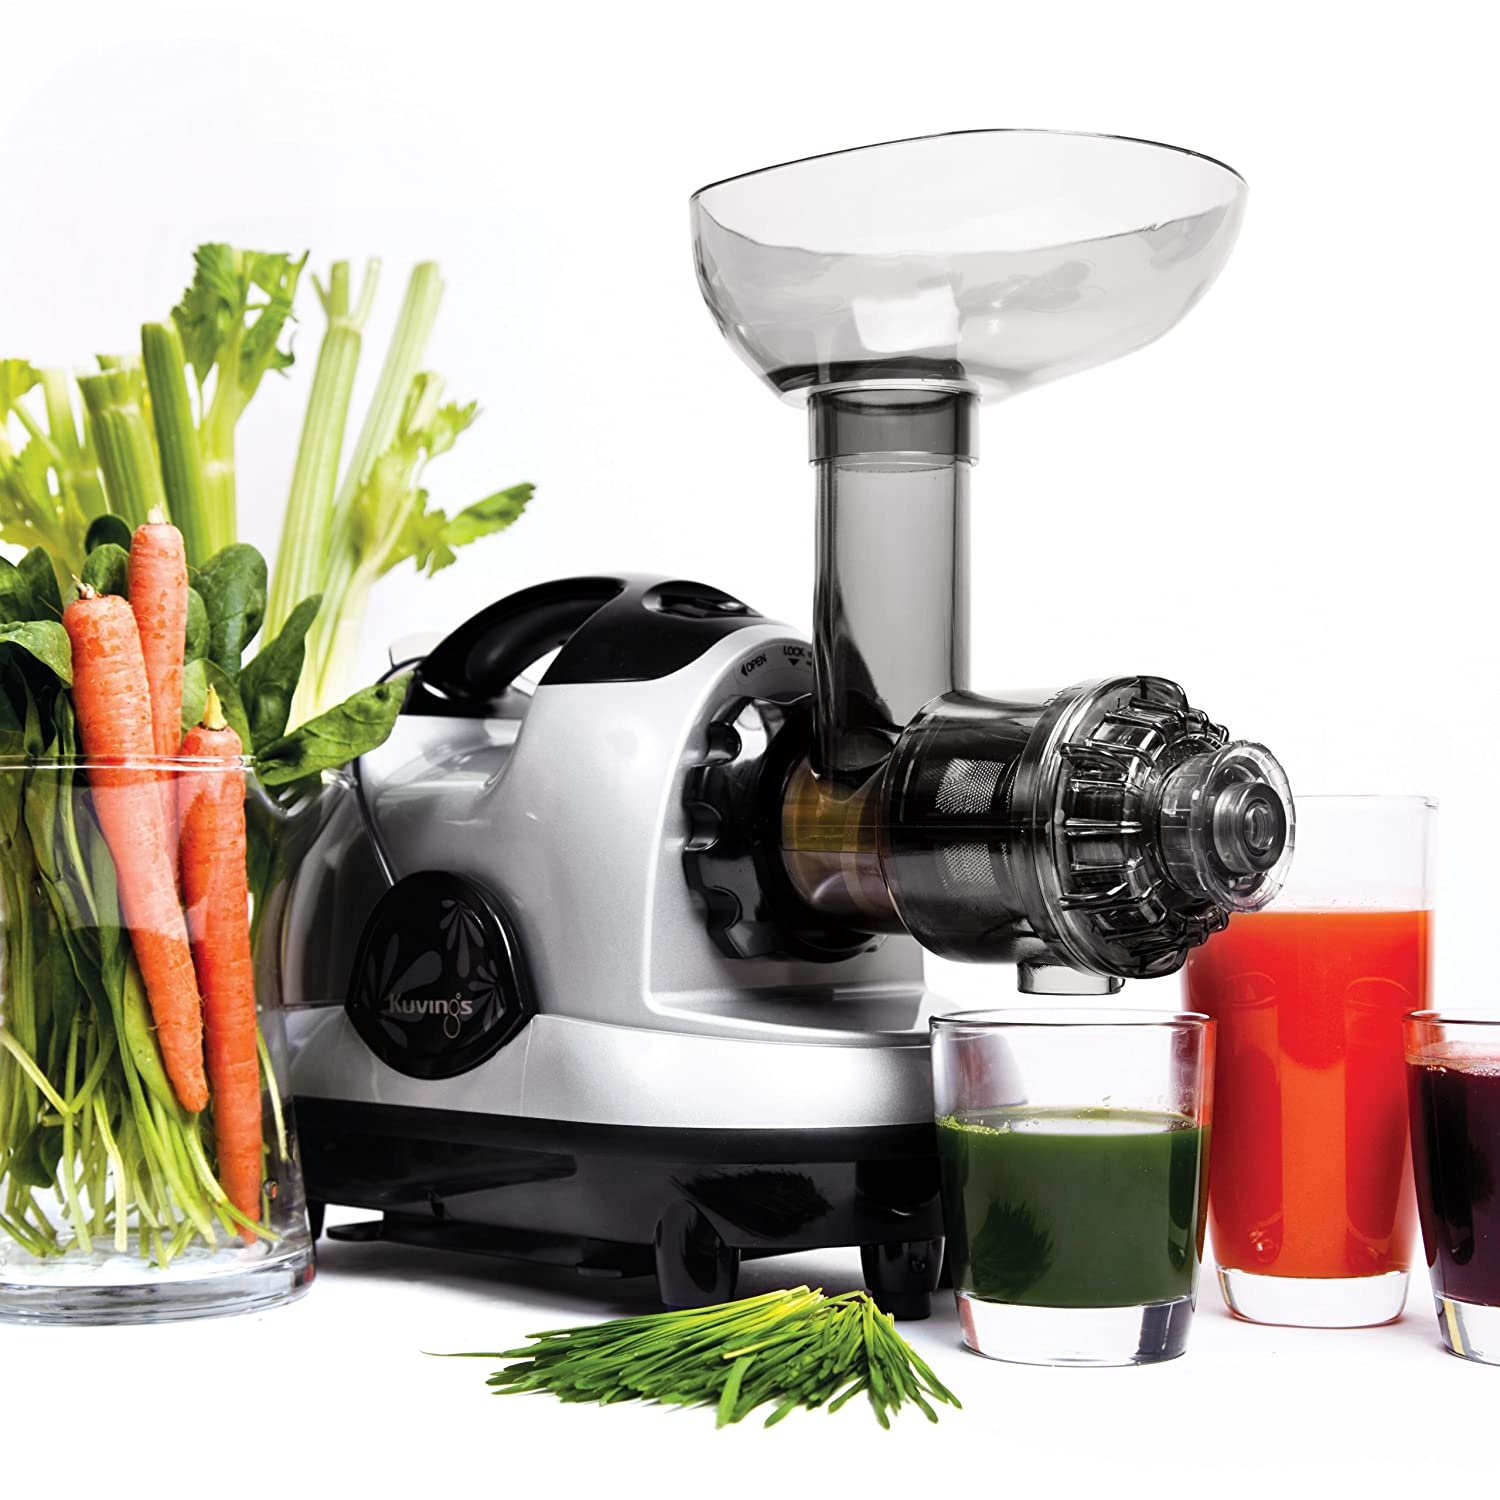 Kuvings NJE-3580U Masticating Slow Juicer Black Friday Deals 2021